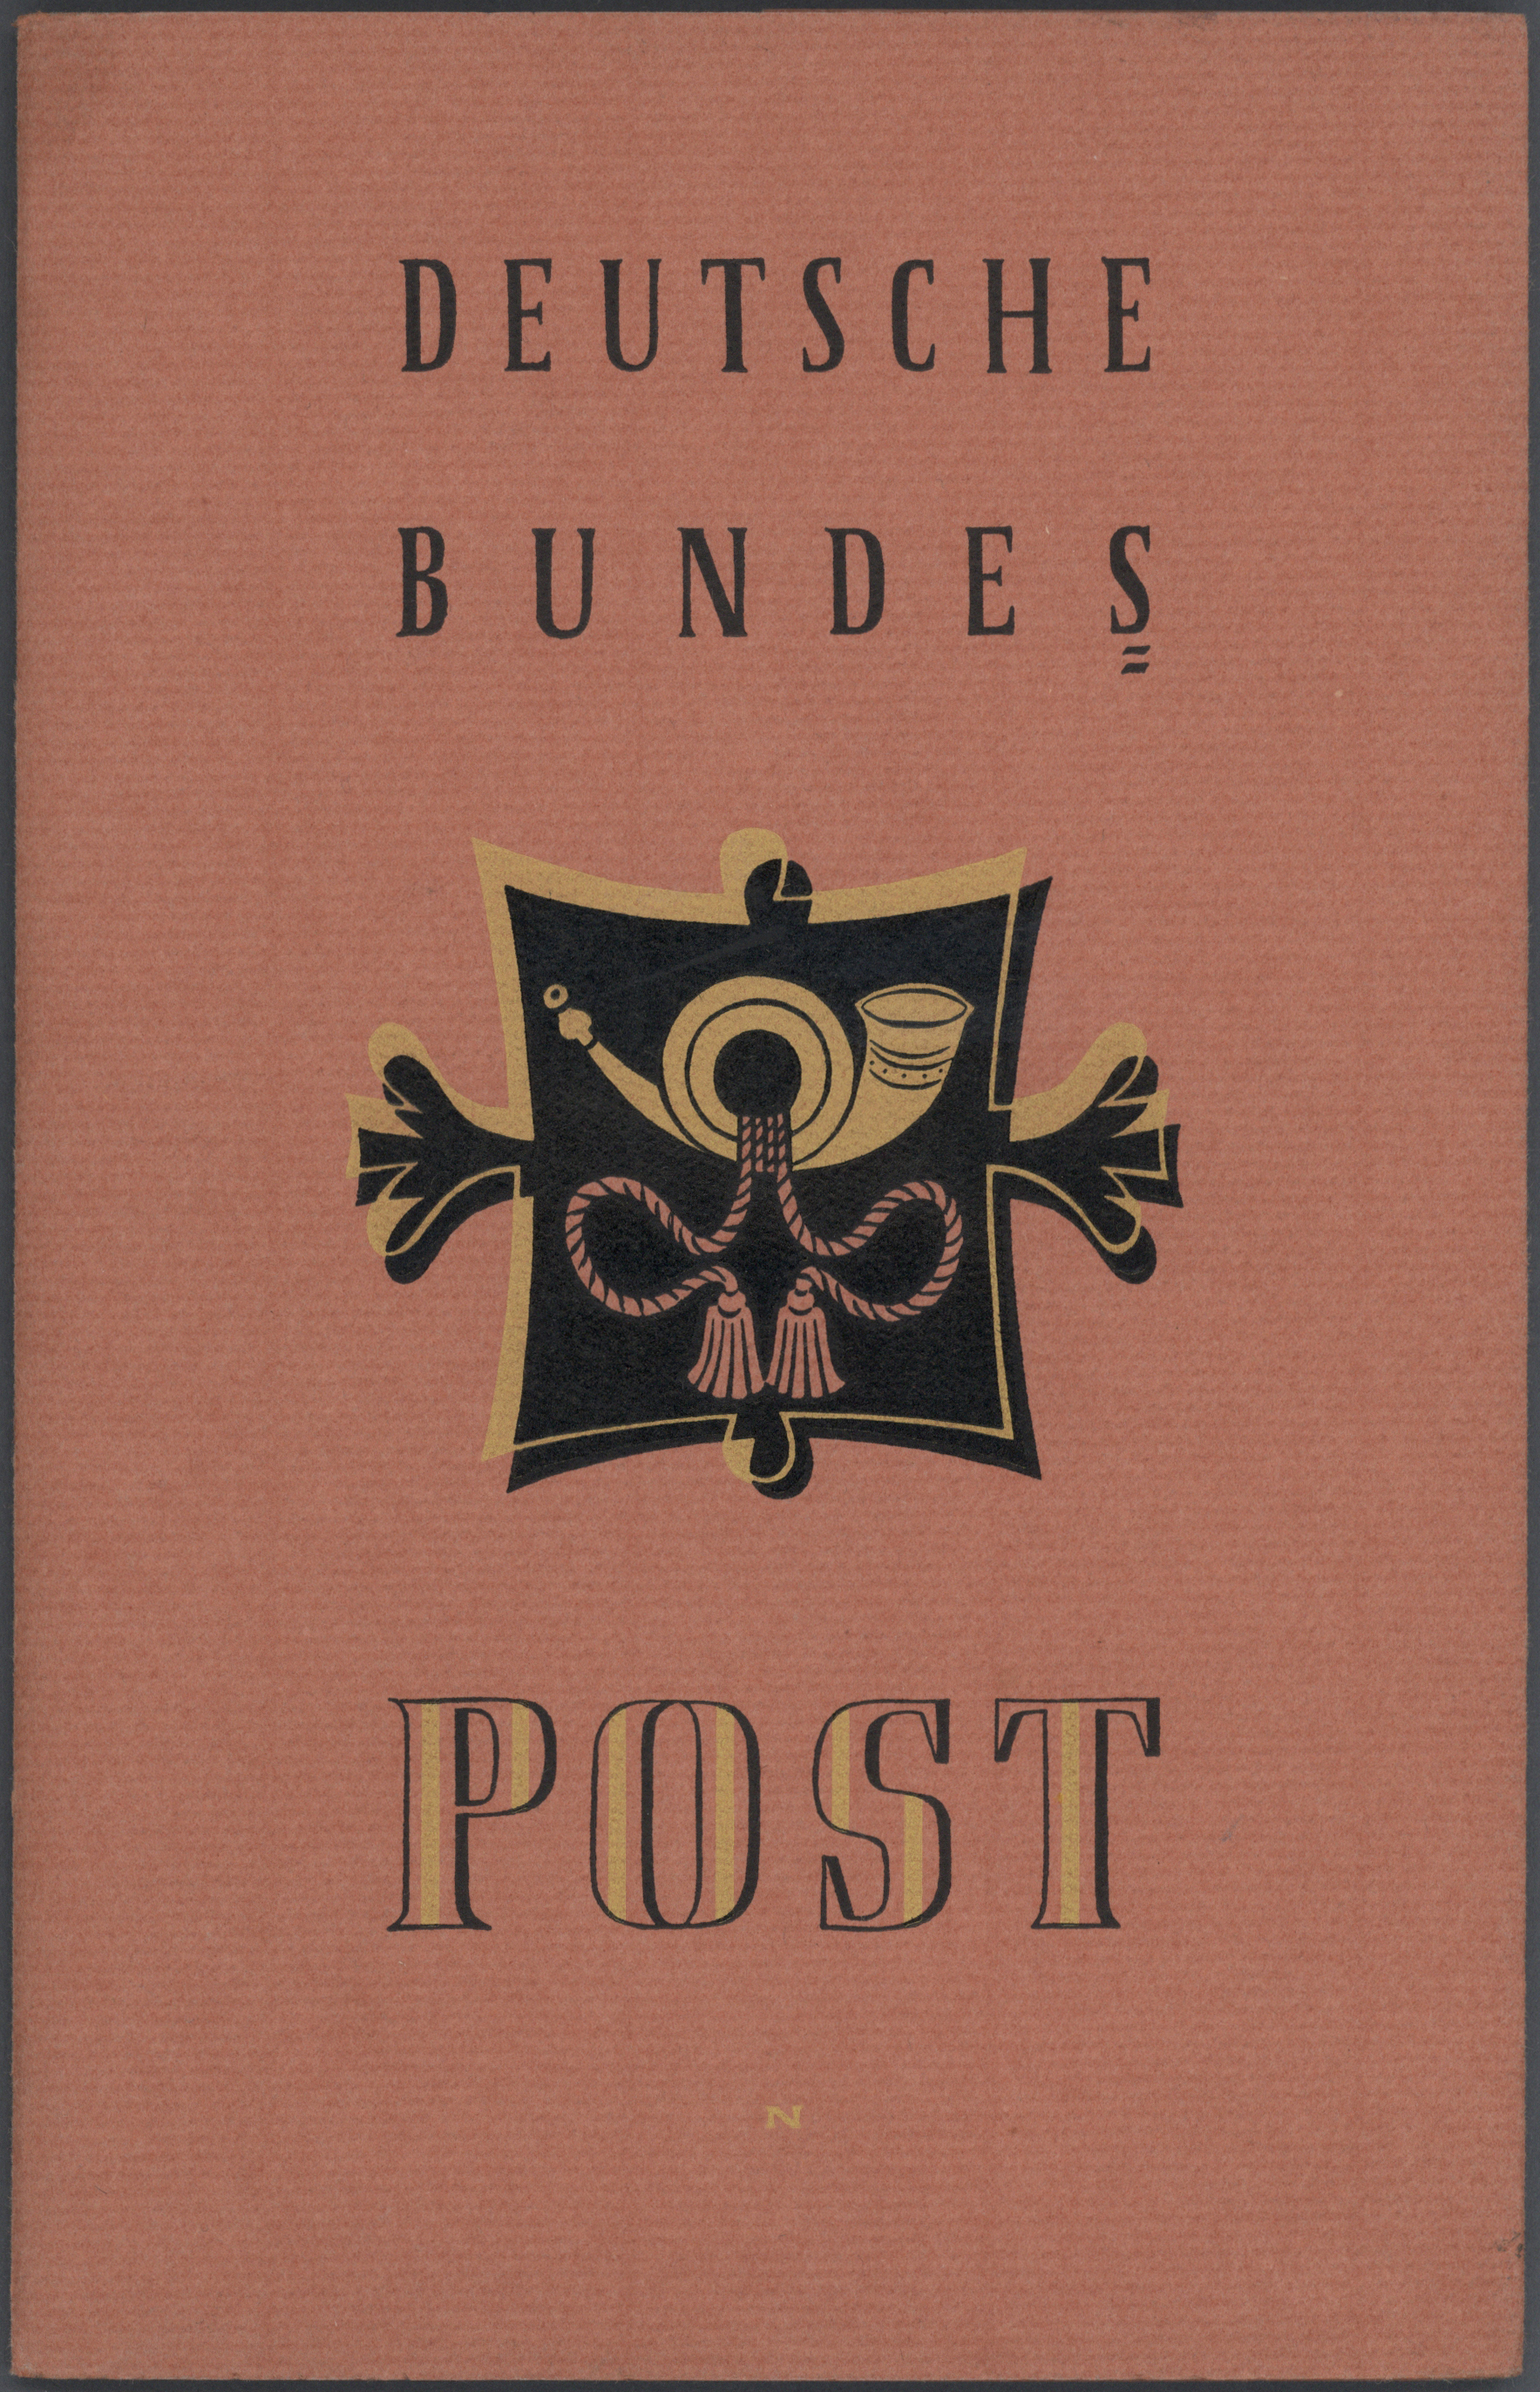 Lot 38101 - bundesrepublik und berlin  -  Auktionshaus Christoph Gärtner GmbH & Co. KG Collections Germany,  Collections Supplement, Surprise boxes #39 Day 7